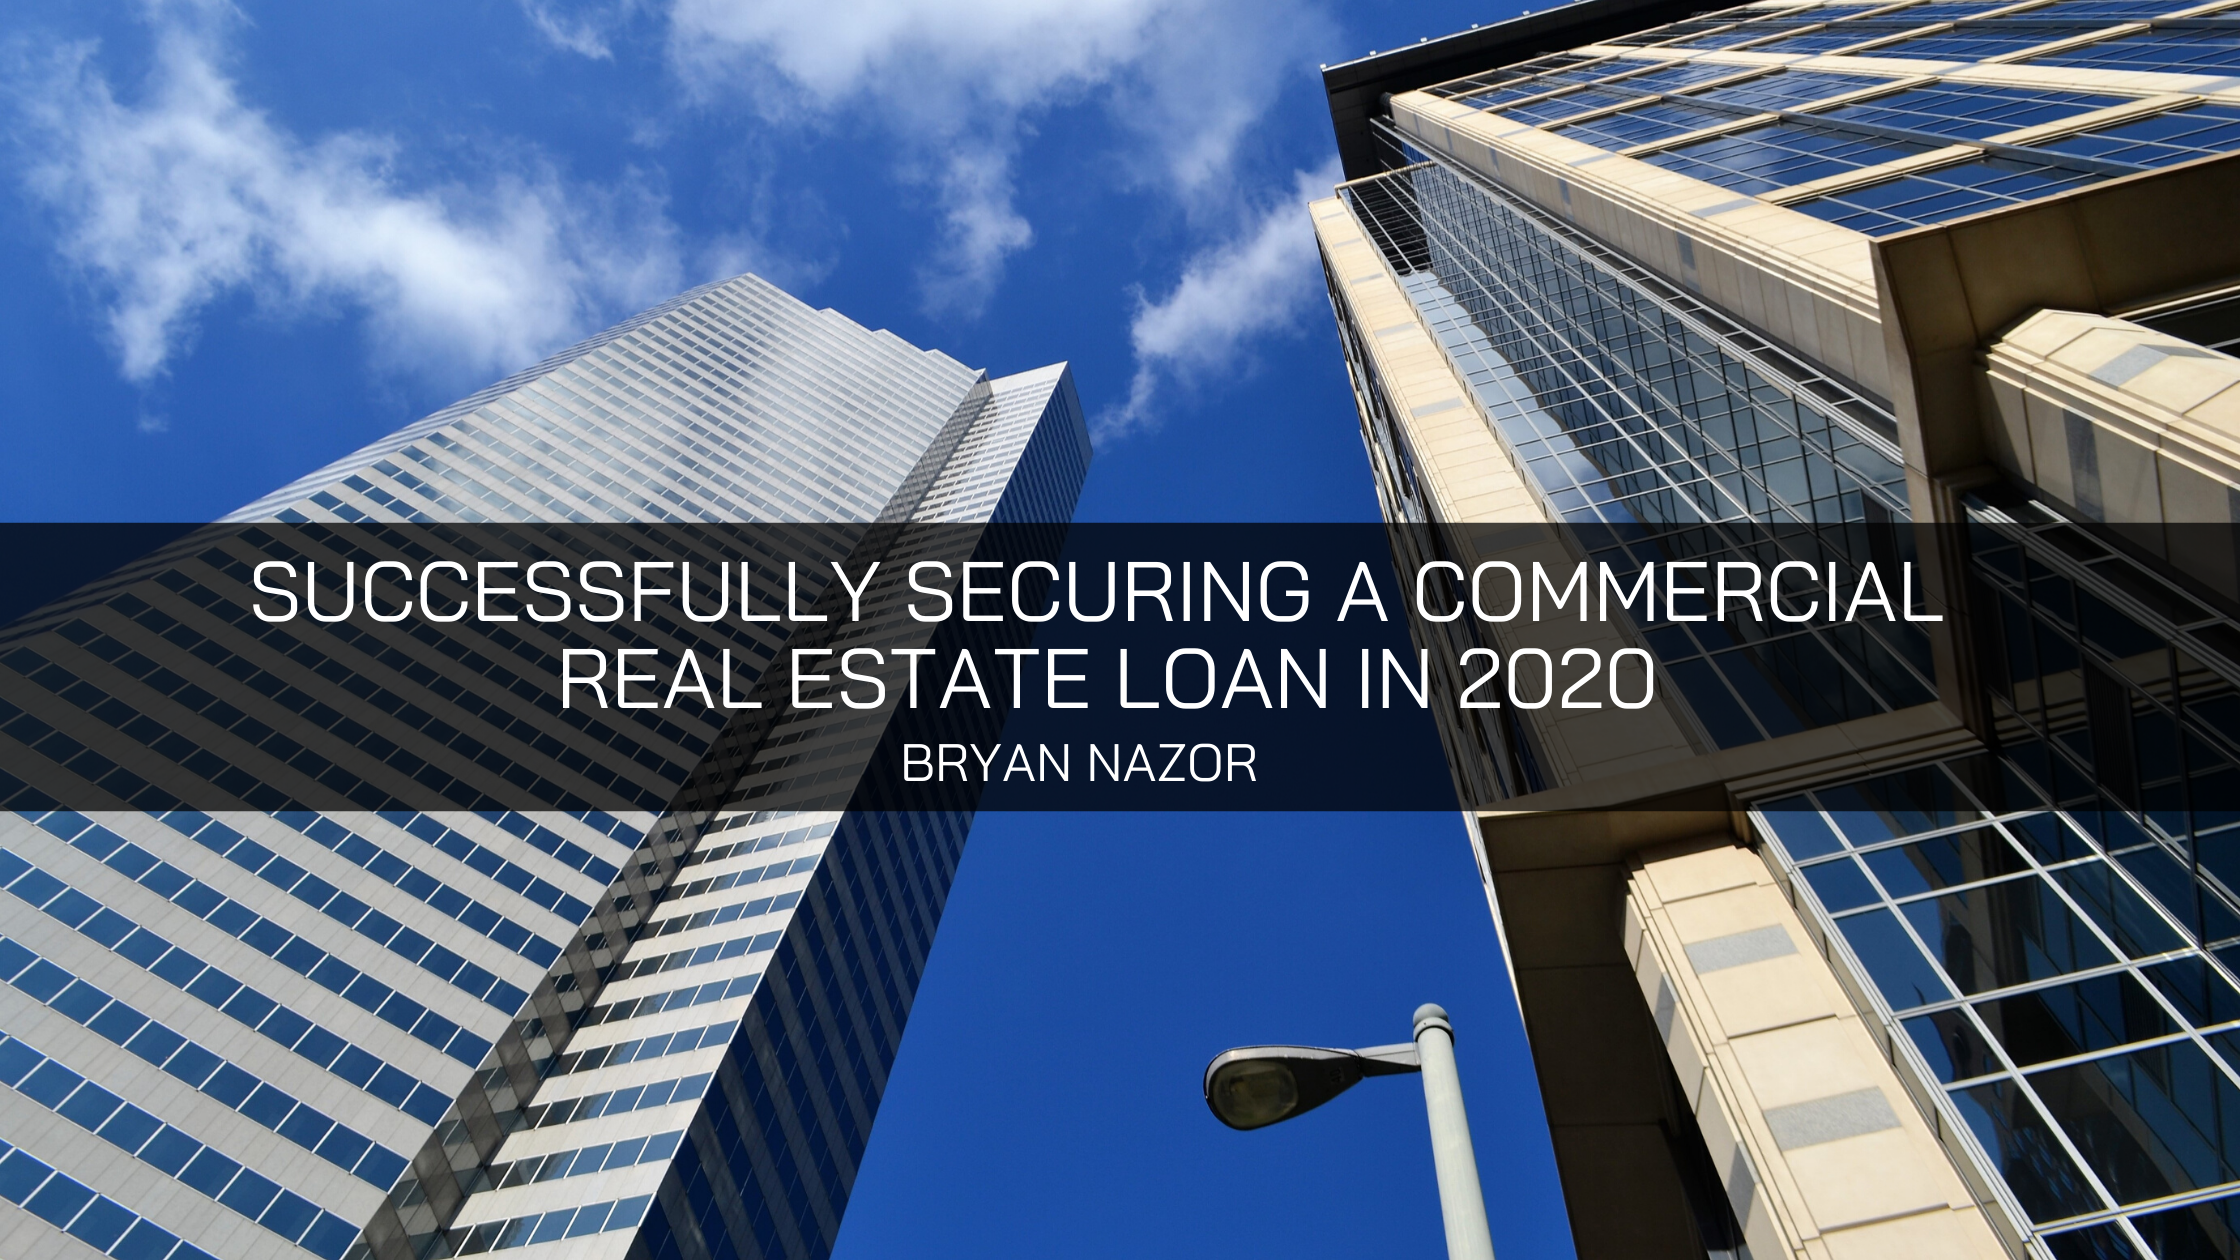 Bryan Nazor on Successfully Securing a Commercial Real Estate Loan in 2020